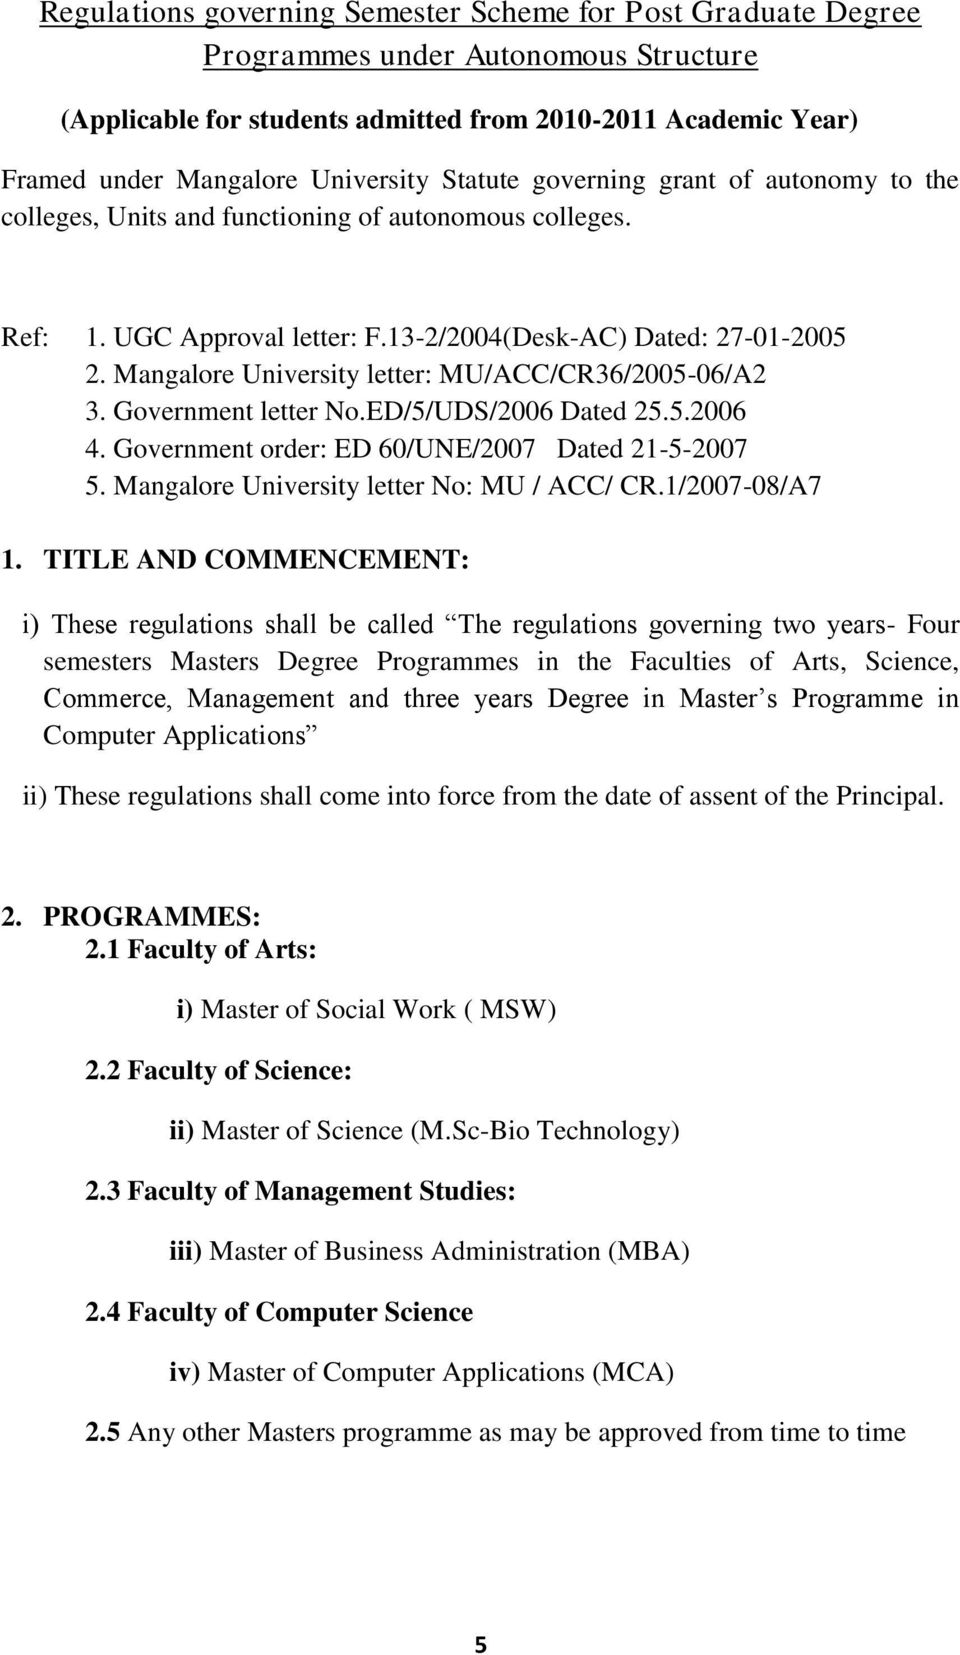 Mangalore University letter: MU/ACC/CR36/2005-06/A2 3. Government letter No.ED/5/UDS/2006 Dated 25.5.2006 4. Government order: ED 60/UNE/2007 Dated 21-5-2007 5.